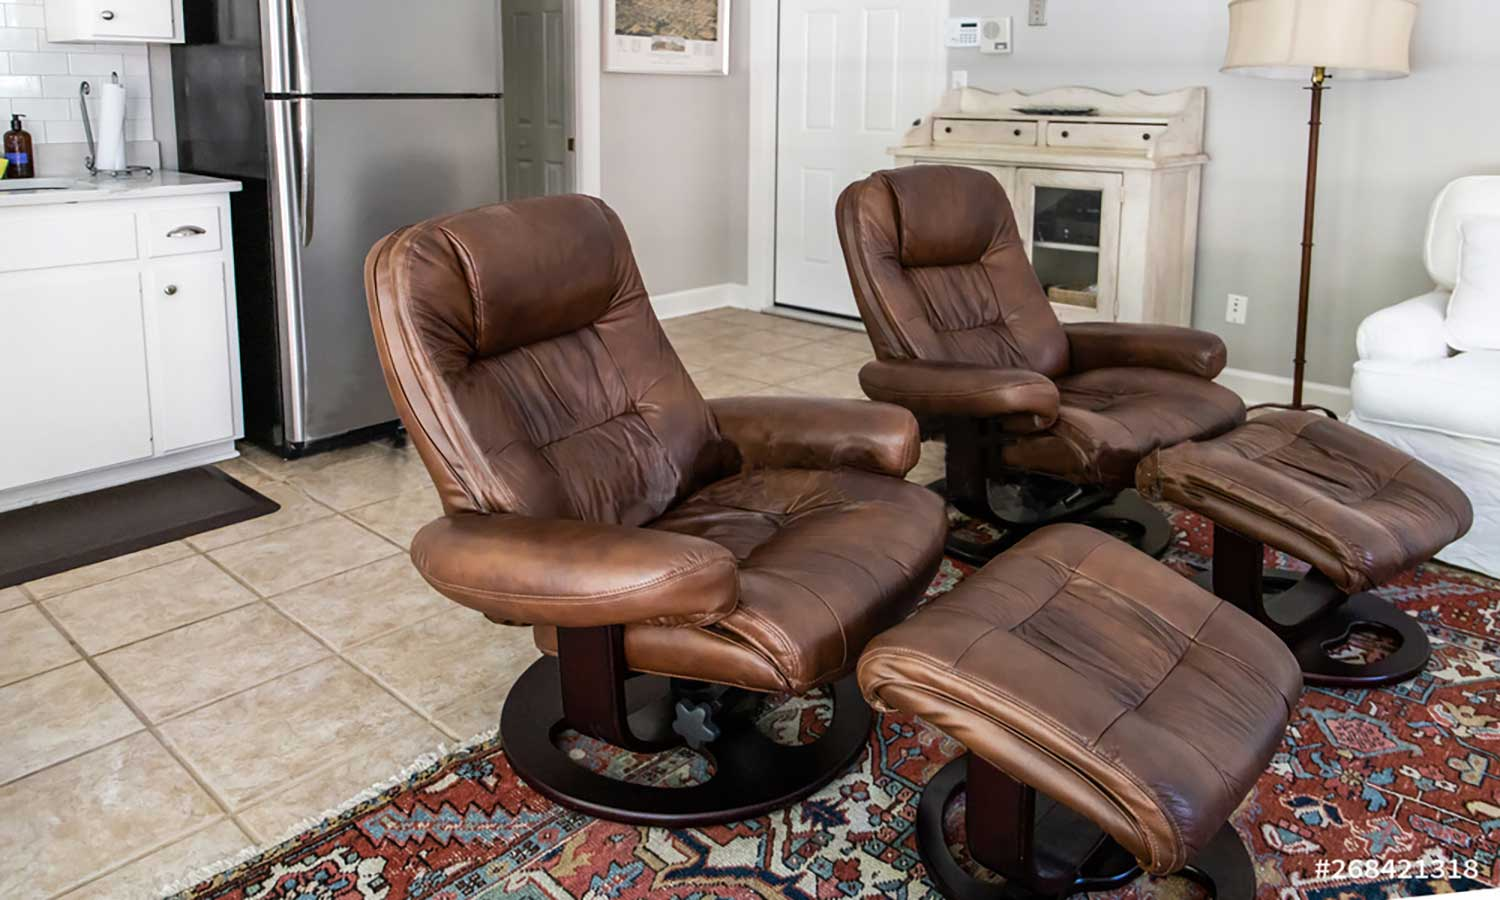 Best massage chair for tall people in 2021